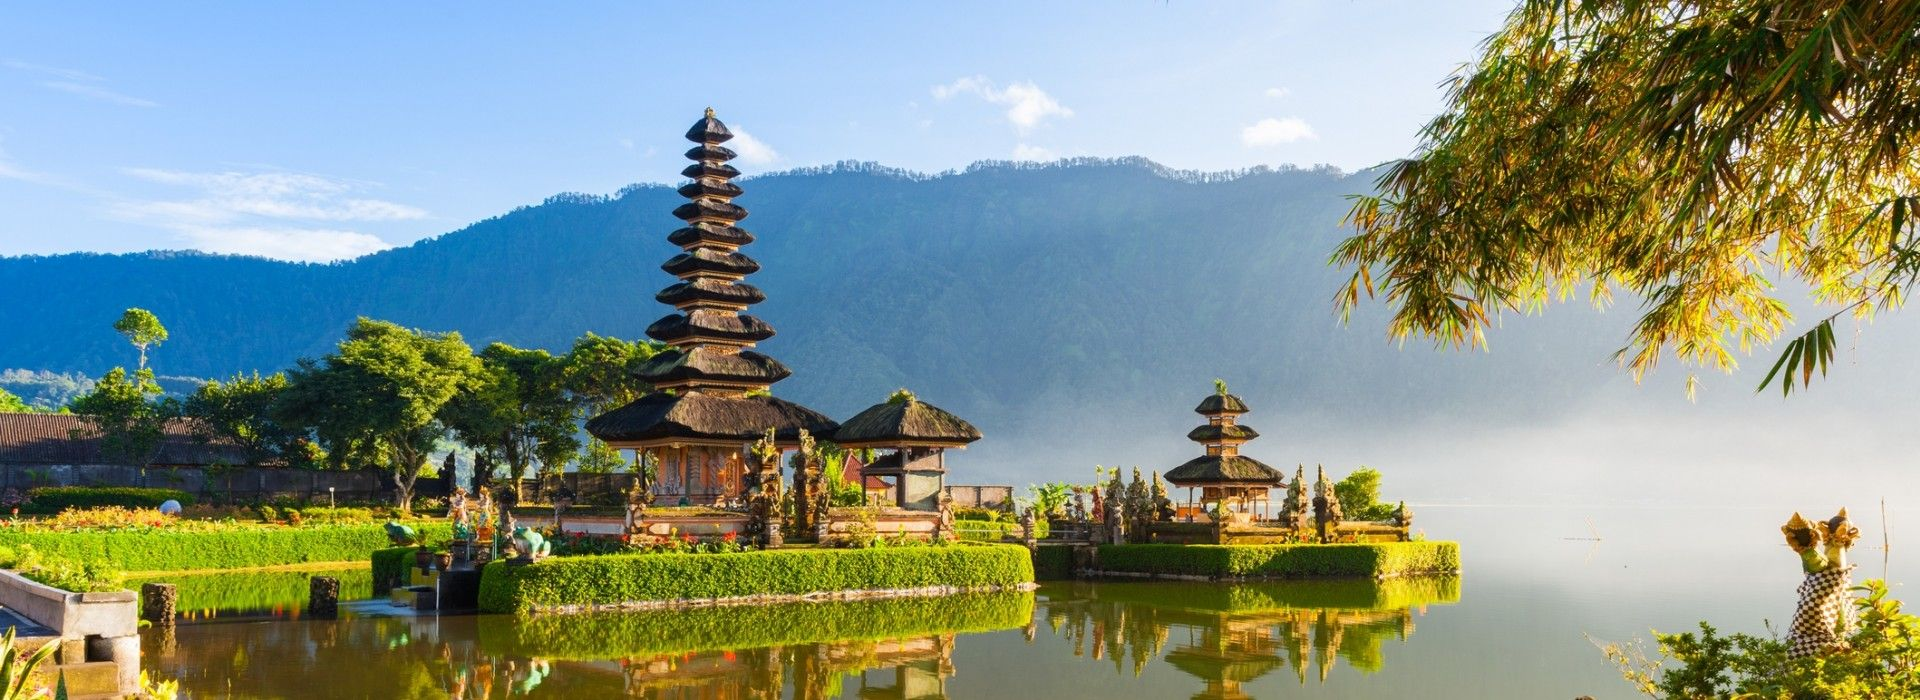 Active and outdoor Tours in Indonesia